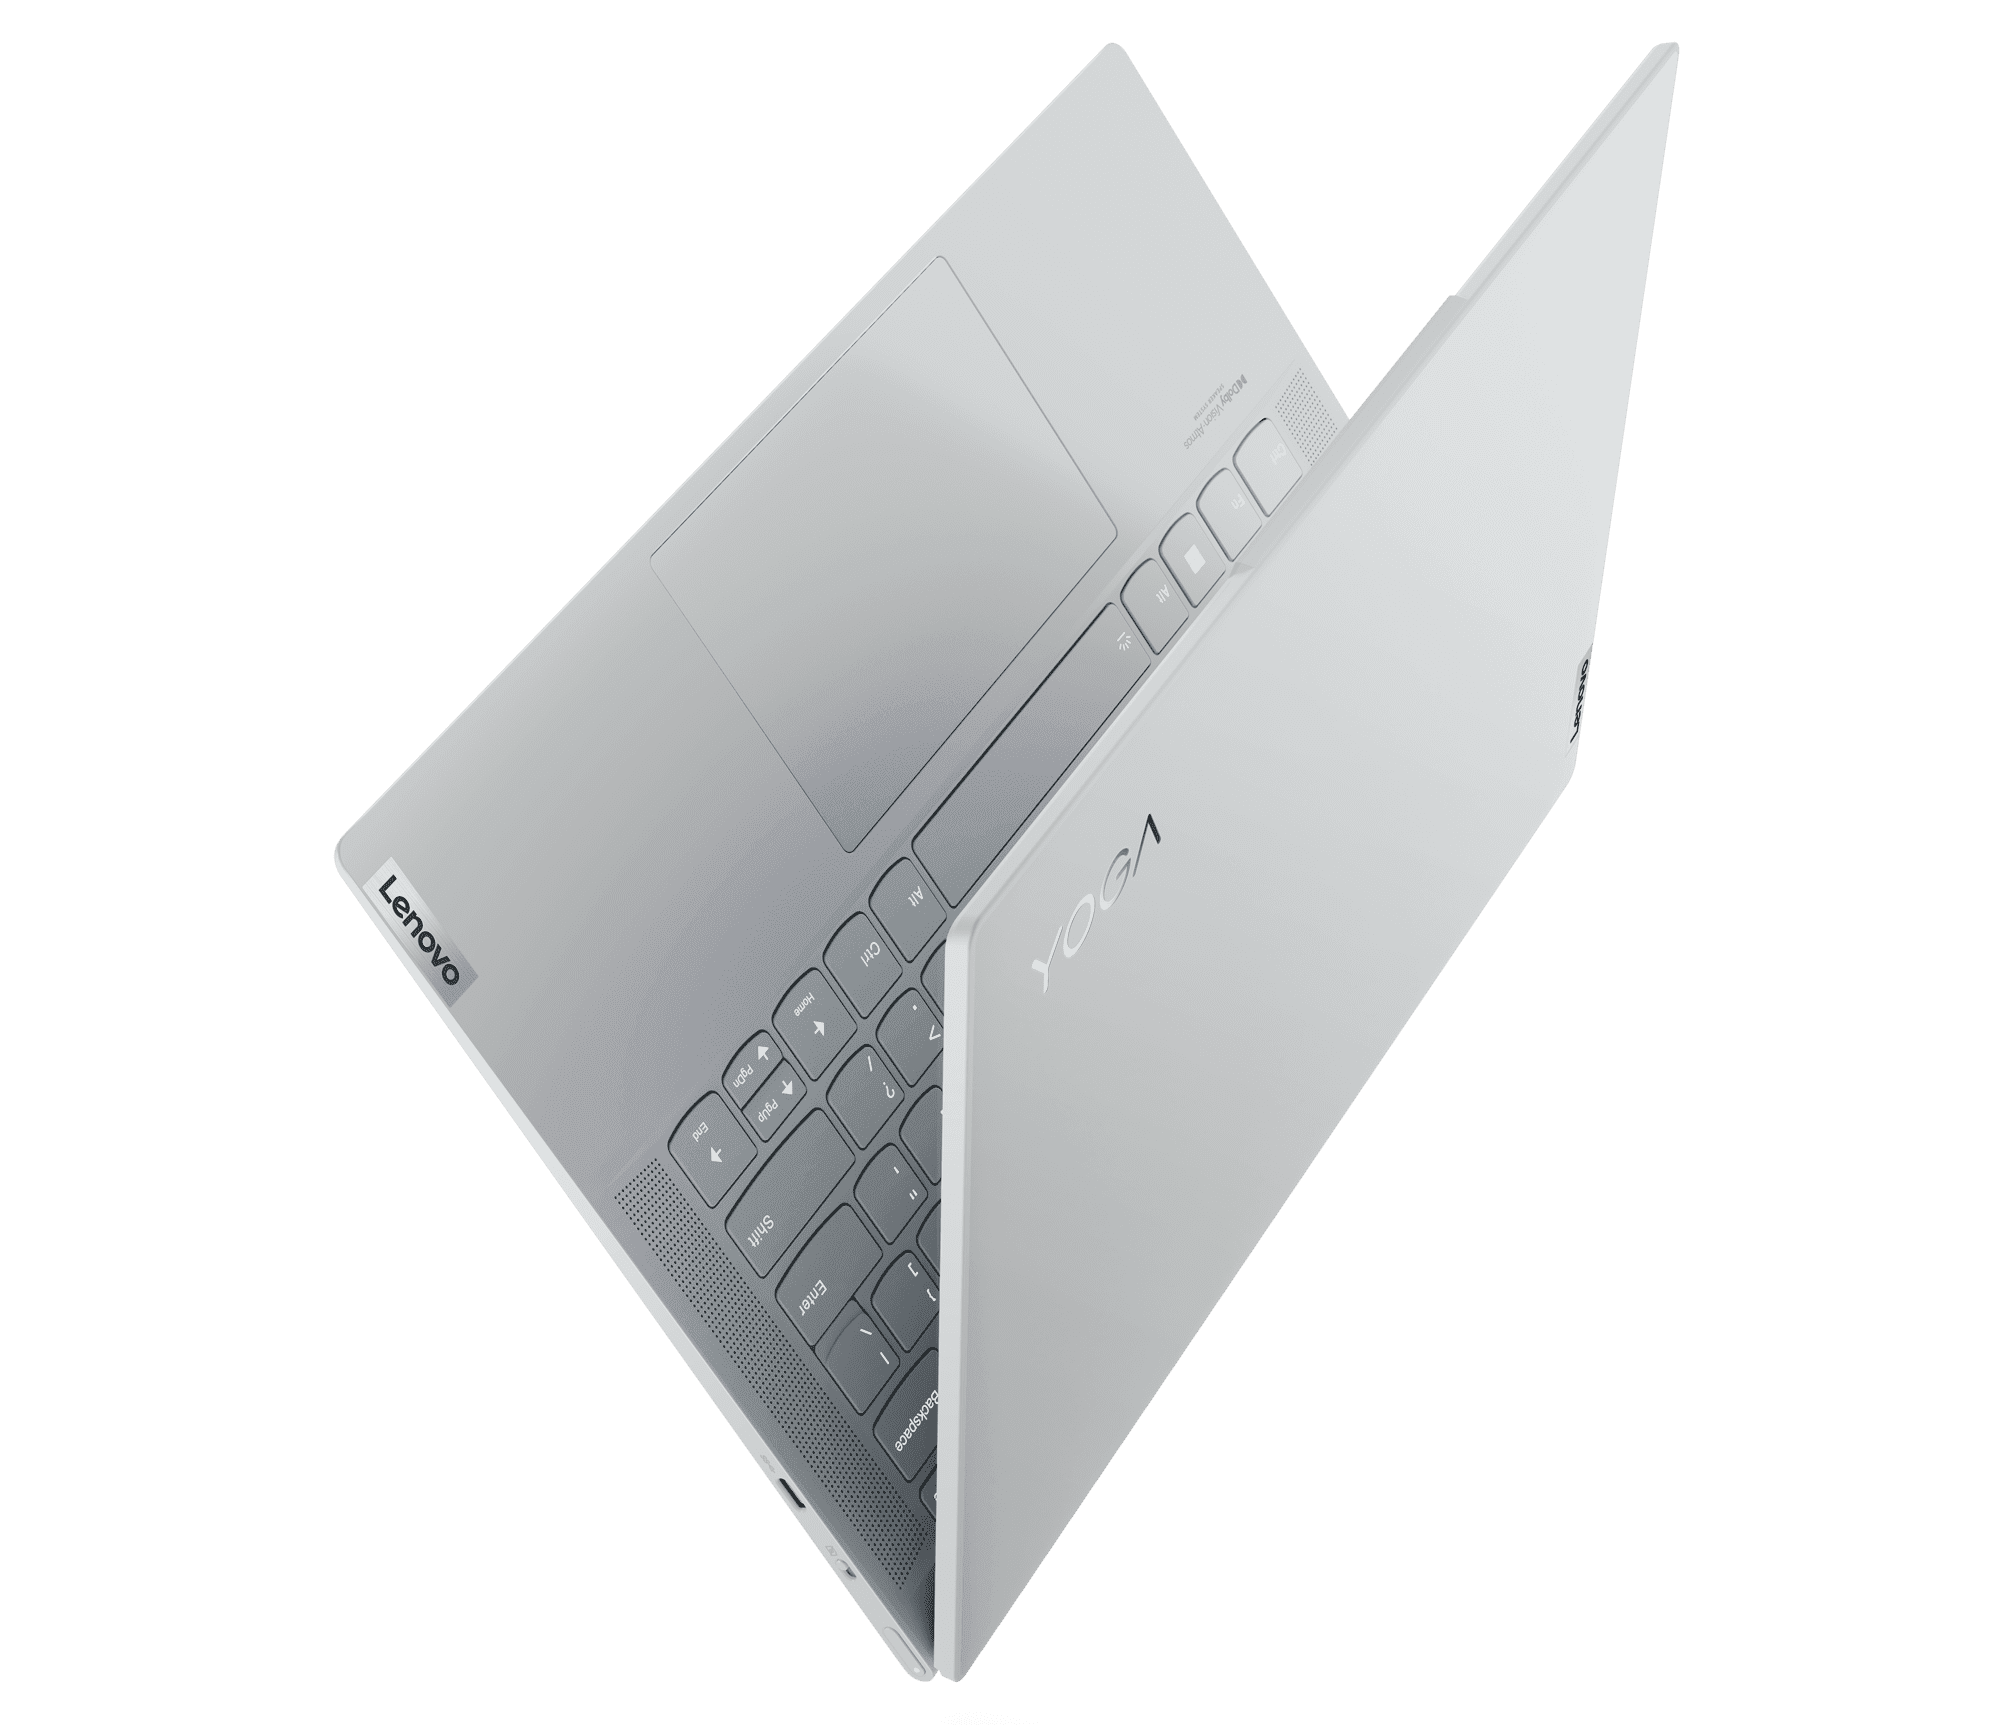 A larger touchpad gives the Yoga Slim 7 Carbon a degree of user flexibility ideal for hybrid work and creation